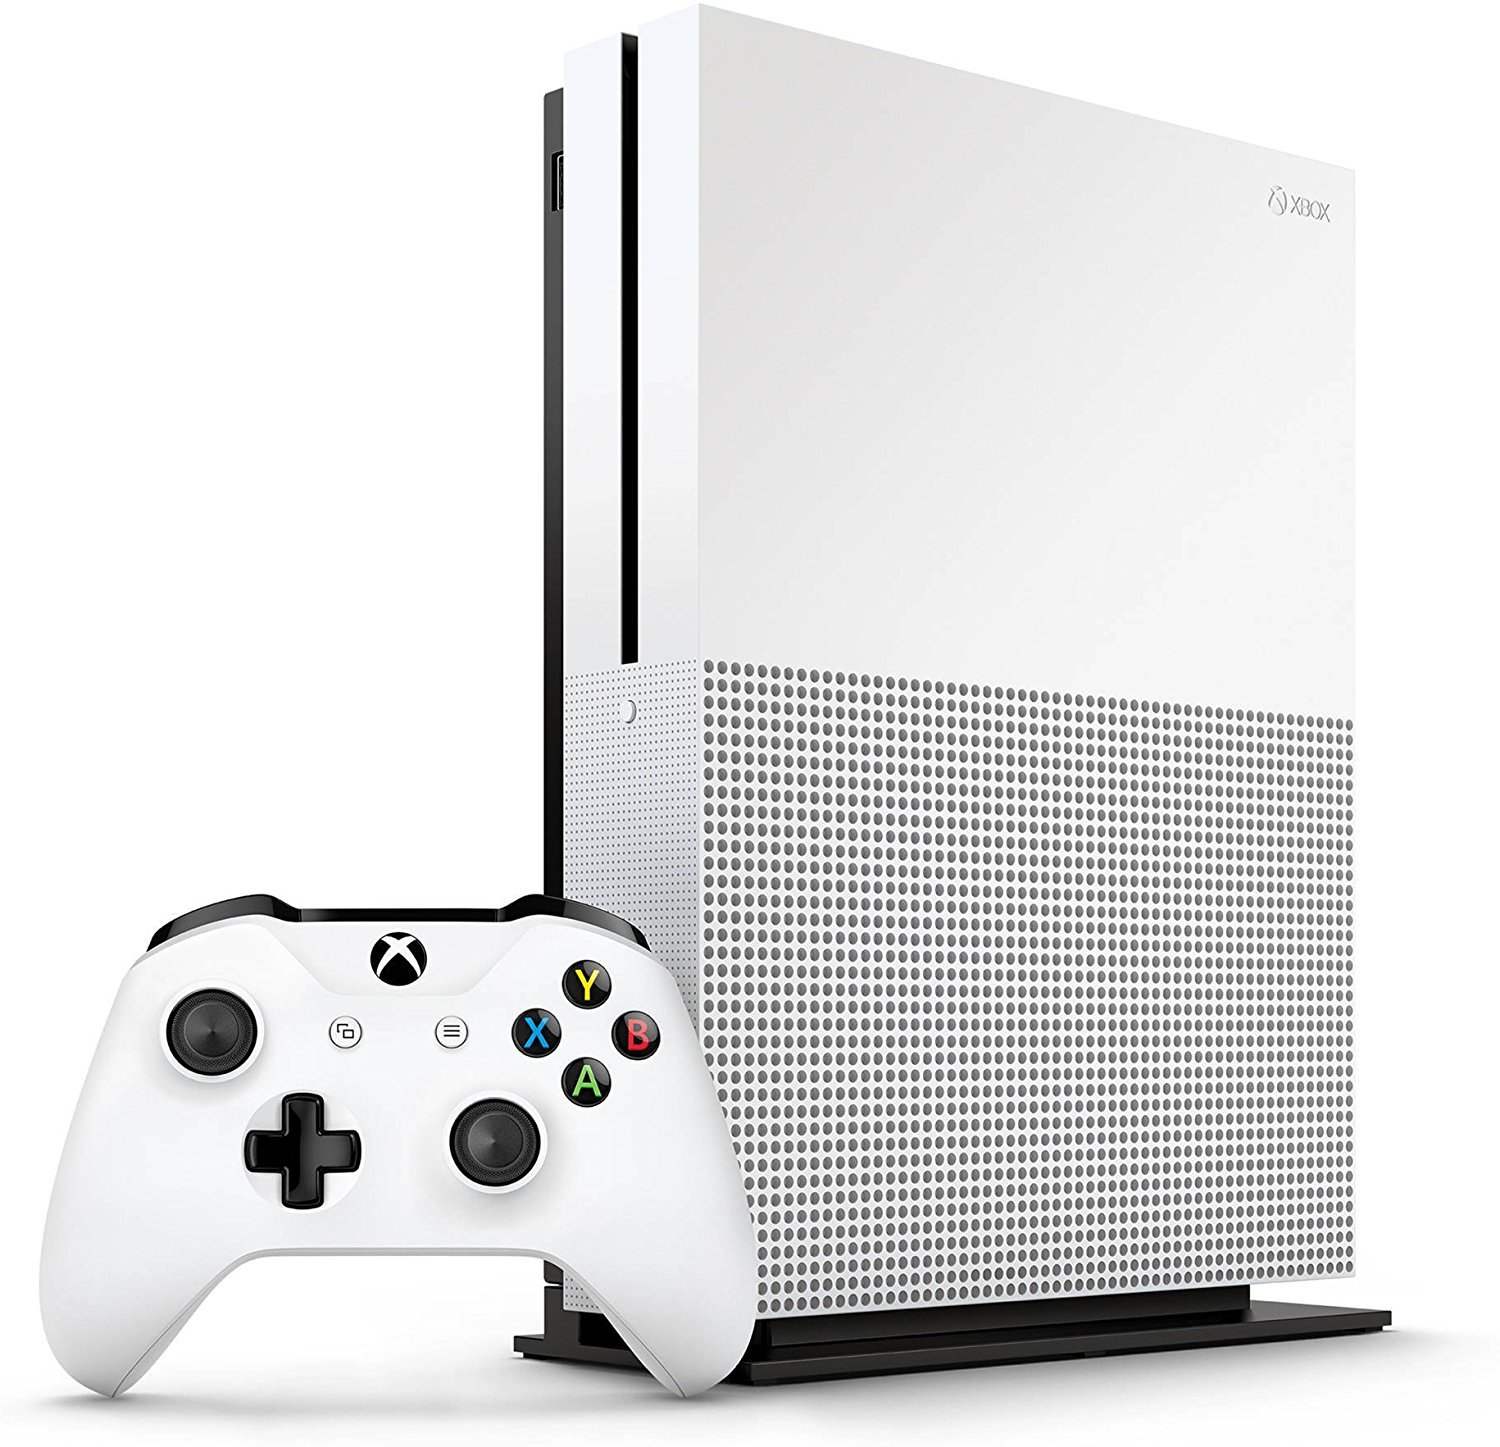 Xbox One S 1TB Console - White by Microsoft